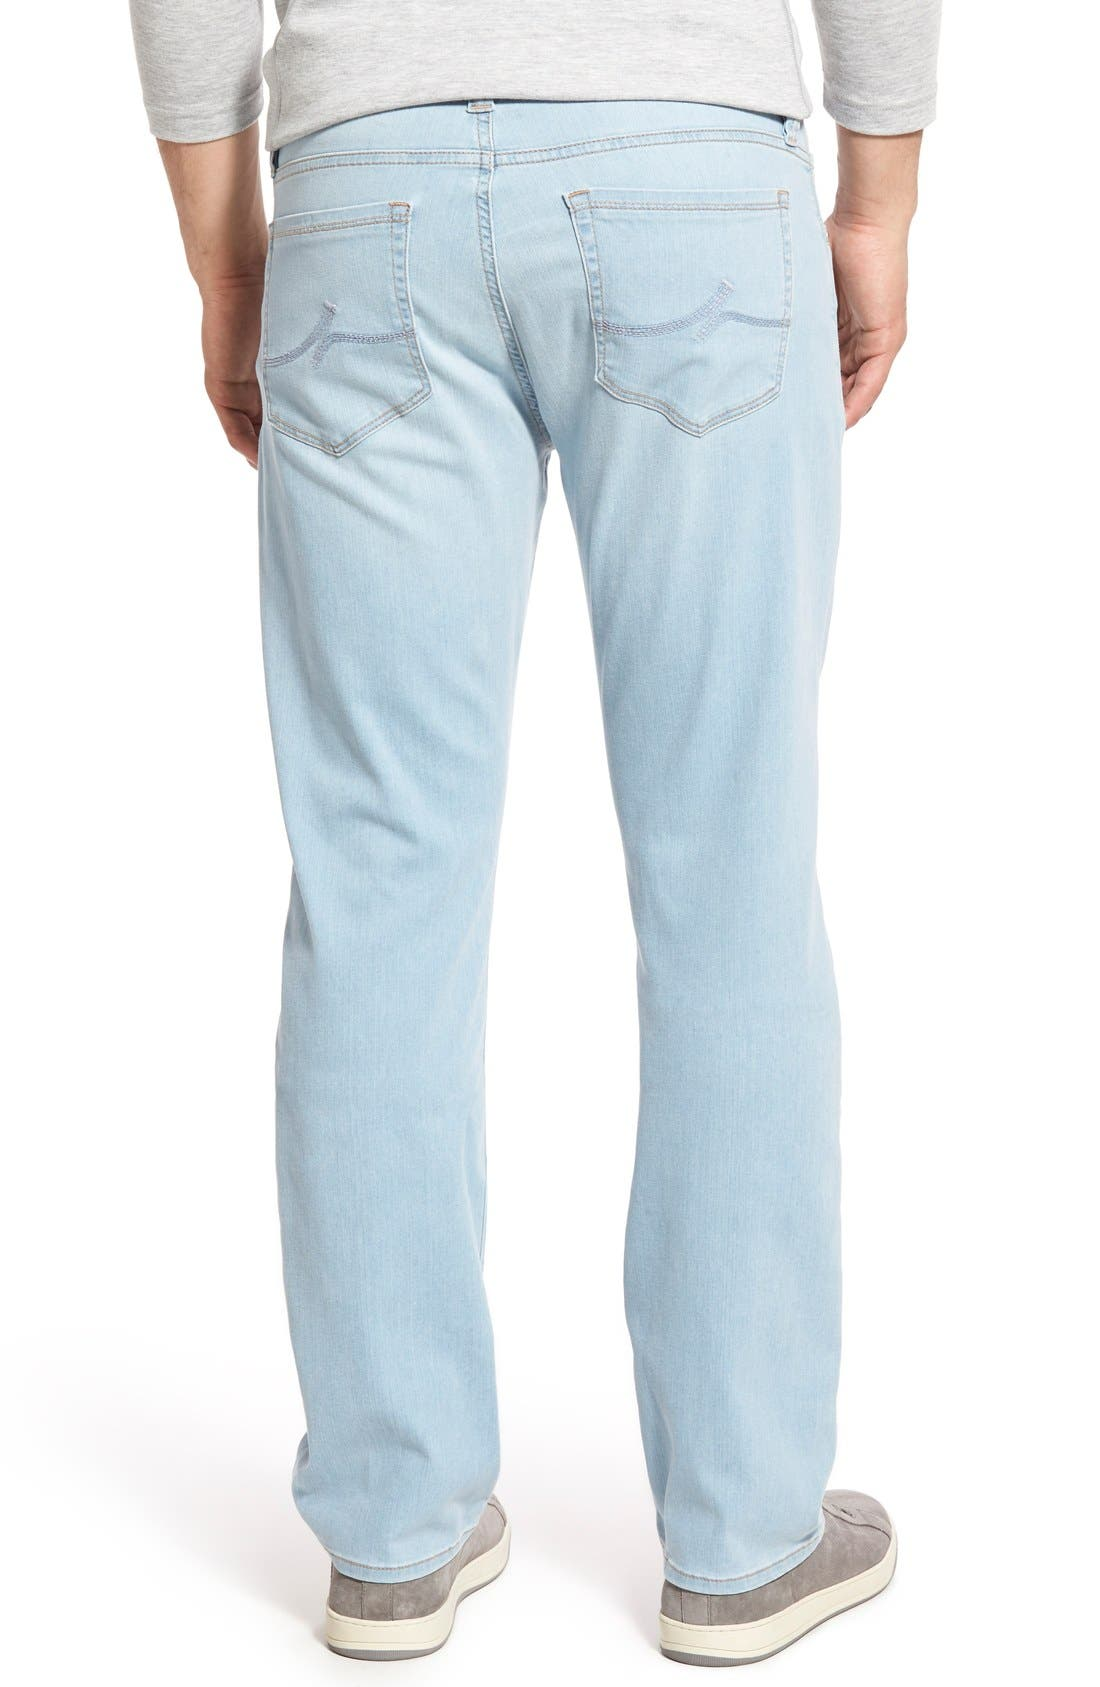 'Charisma' Relaxed Fit Jeans,                             Alternate thumbnail 2, color,